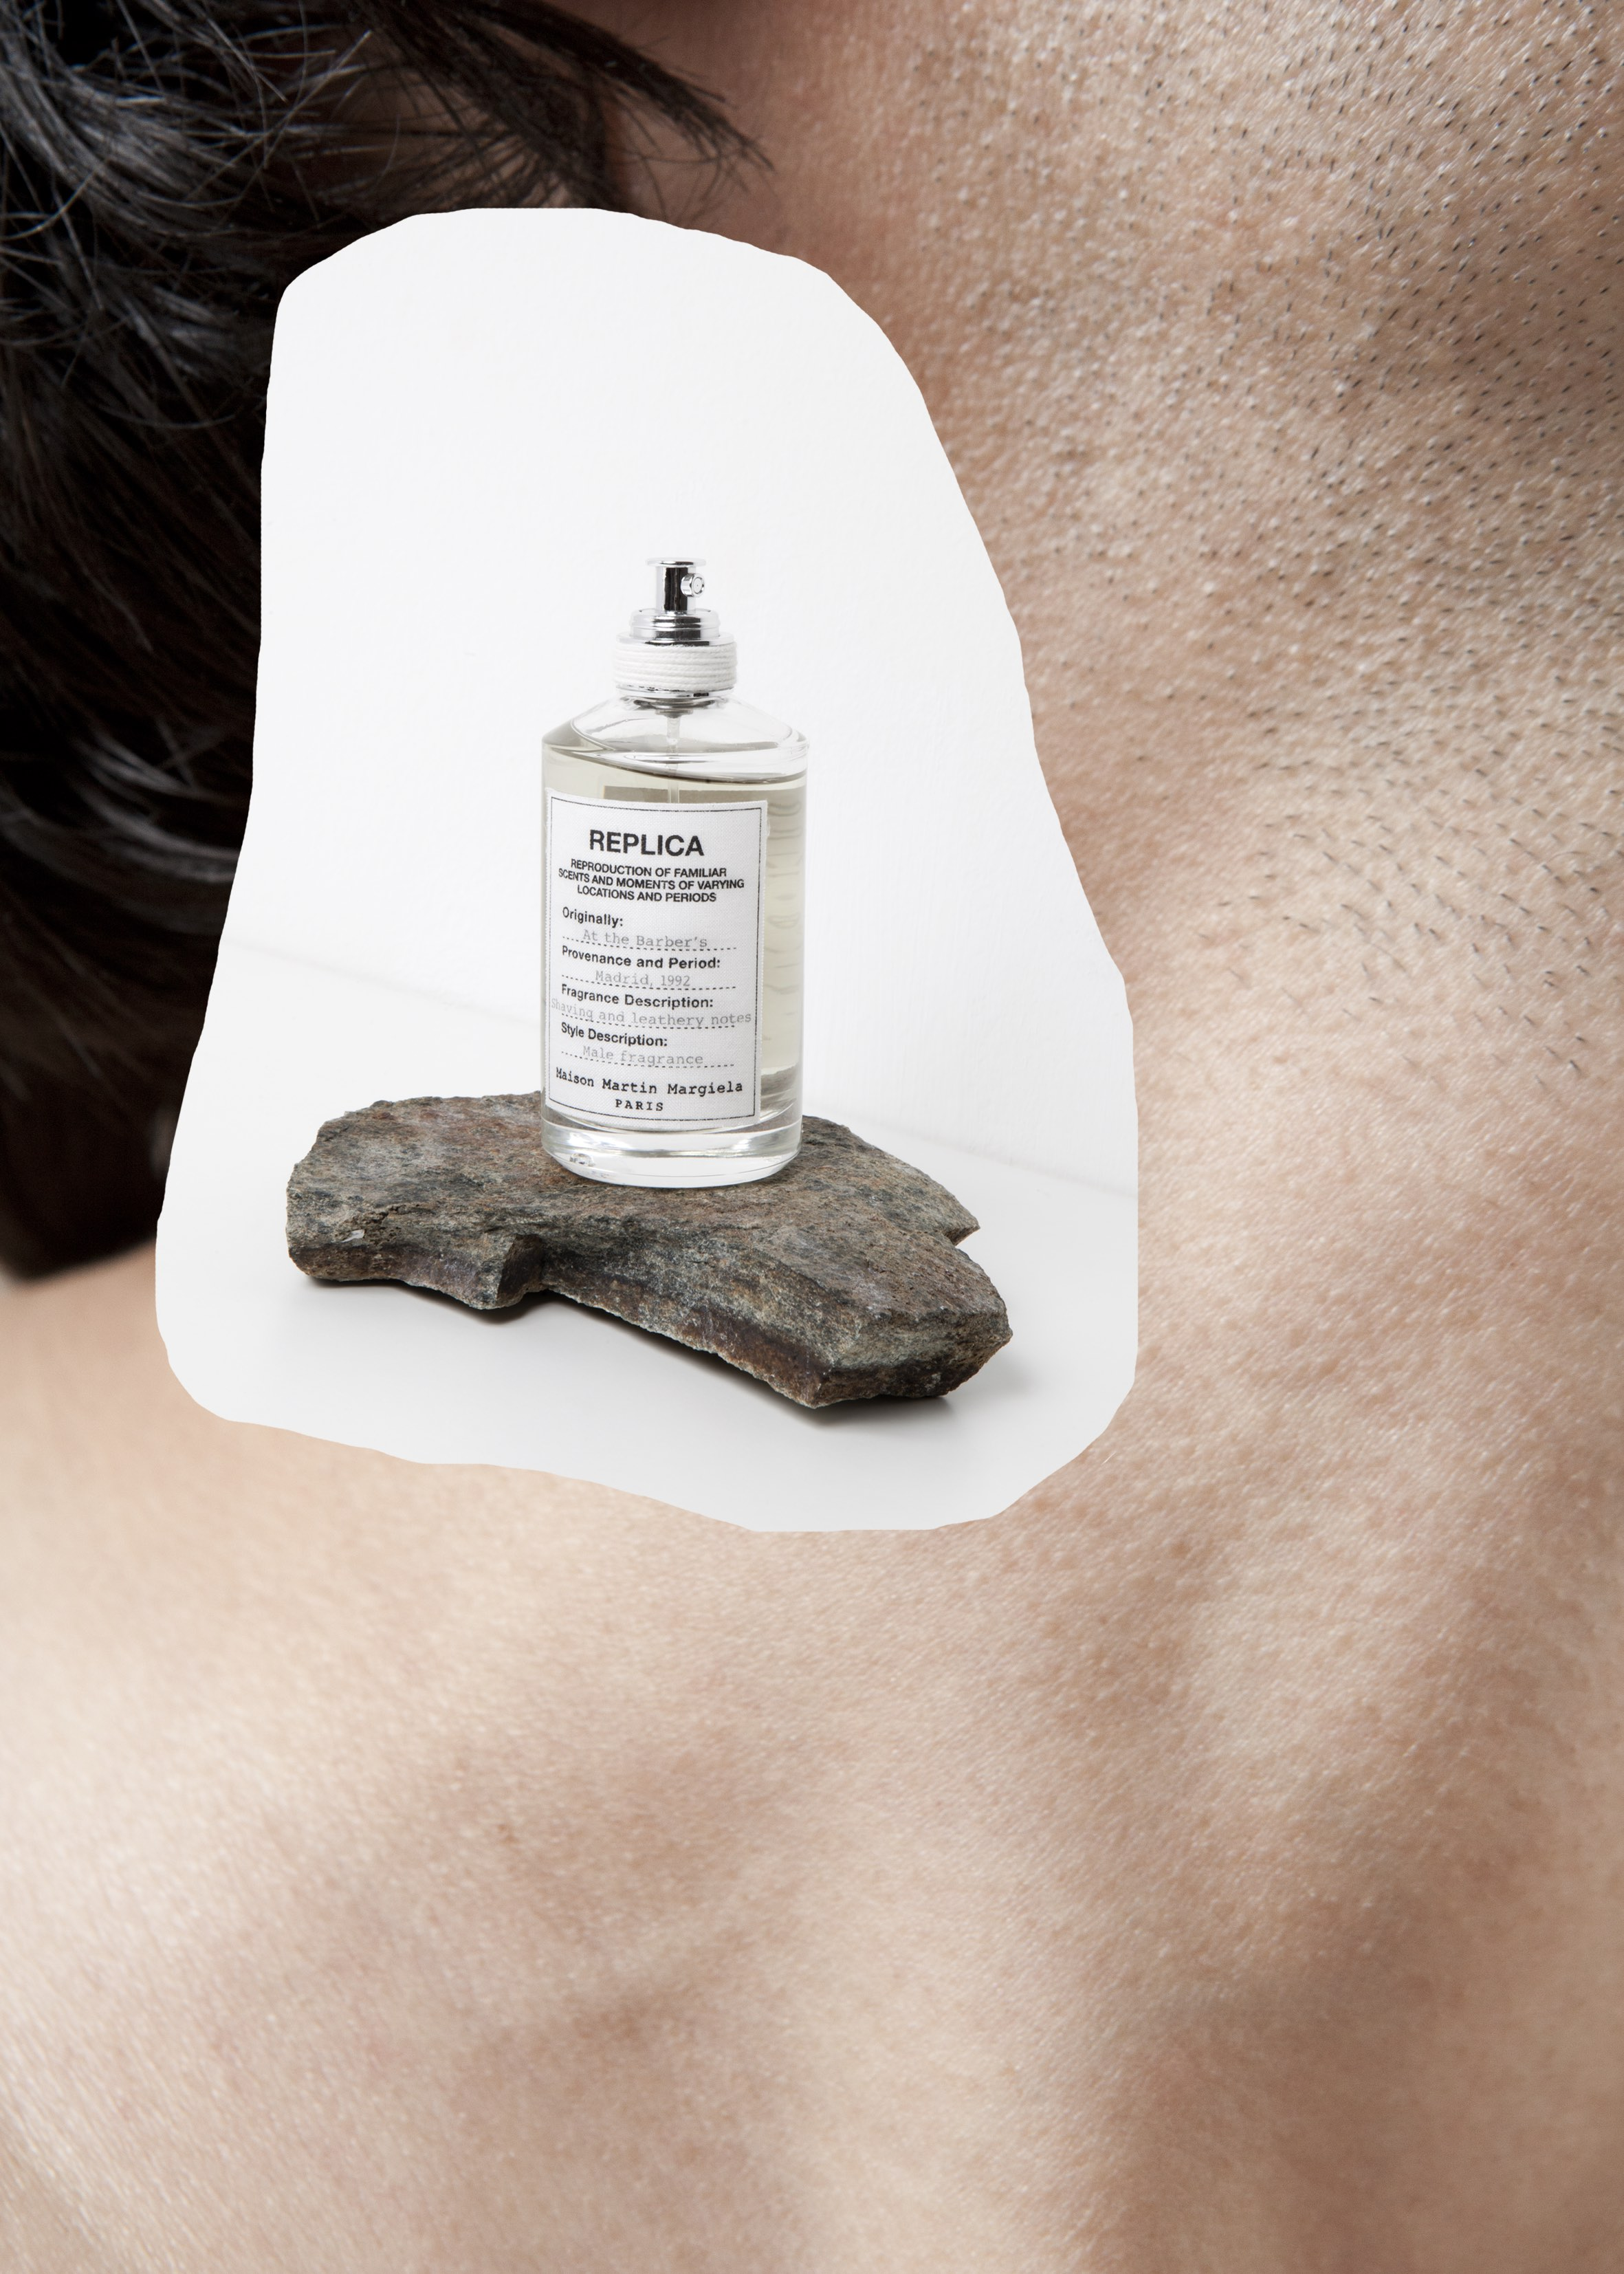 MAISON MARTIN MARGIELA AT THE BARBER'S  evokes a vintage masculine ritual in the atmosphere of a barbershop.